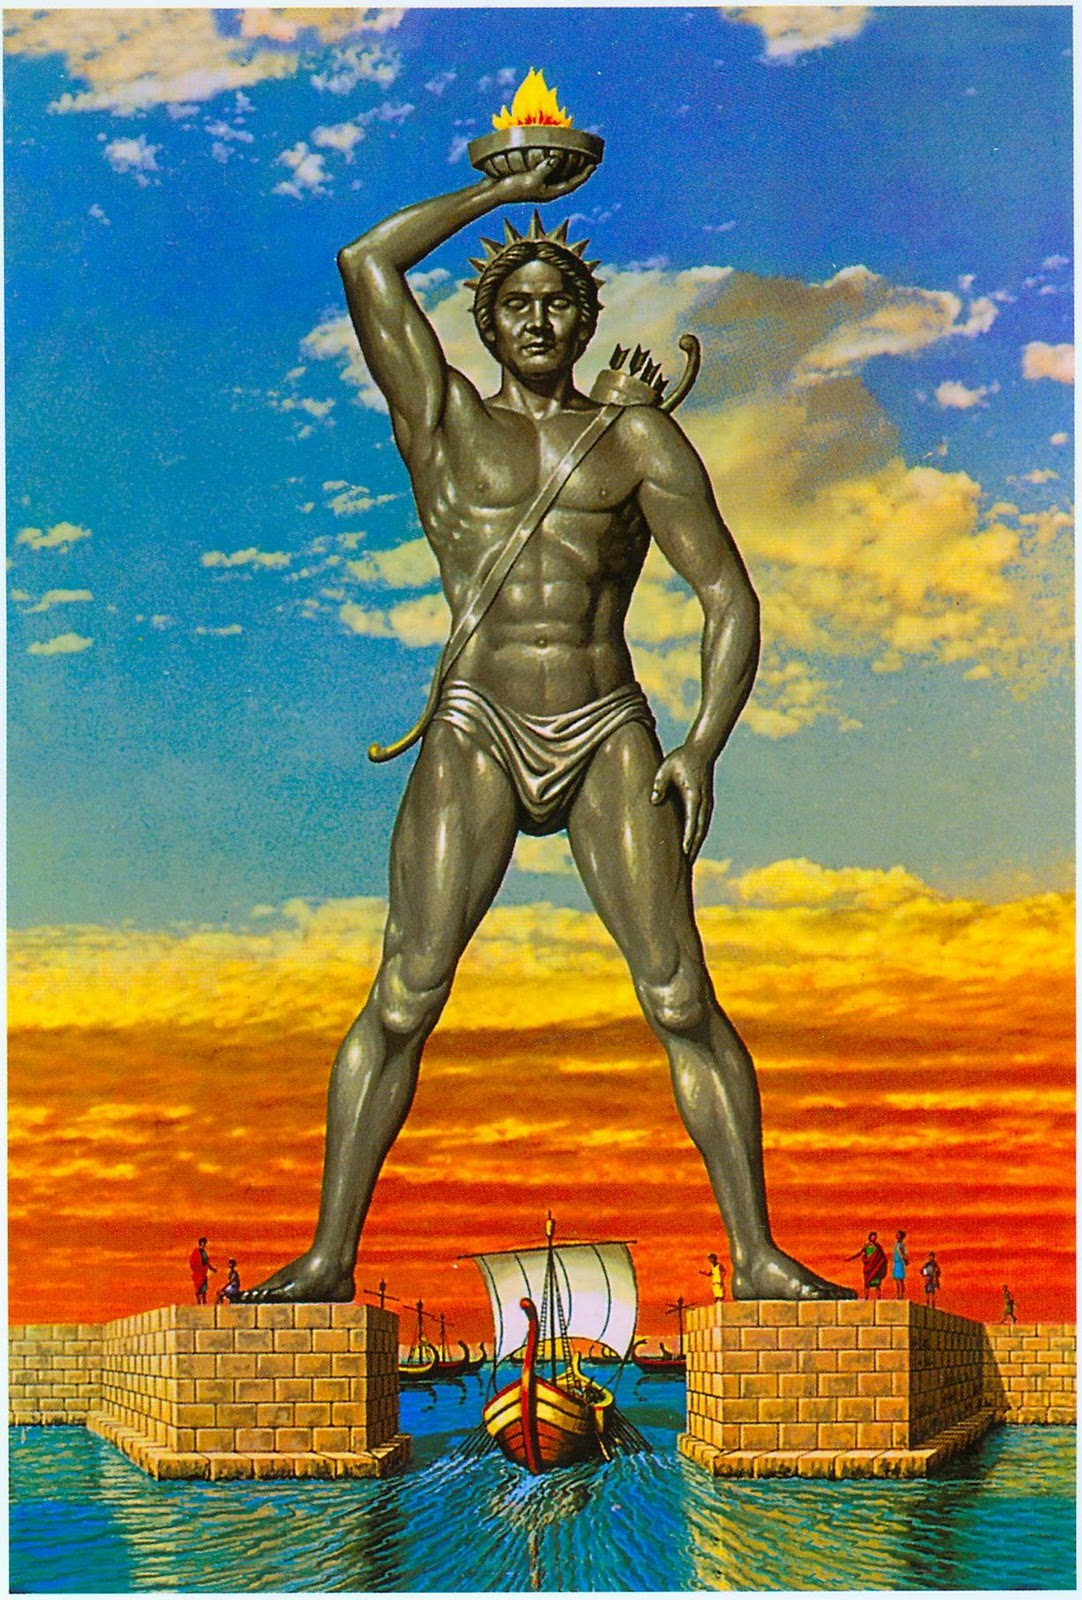 An artist's depiction of the original Colossus of Rhodes statue. Explore Rhodes with AutoRhodes car hire.